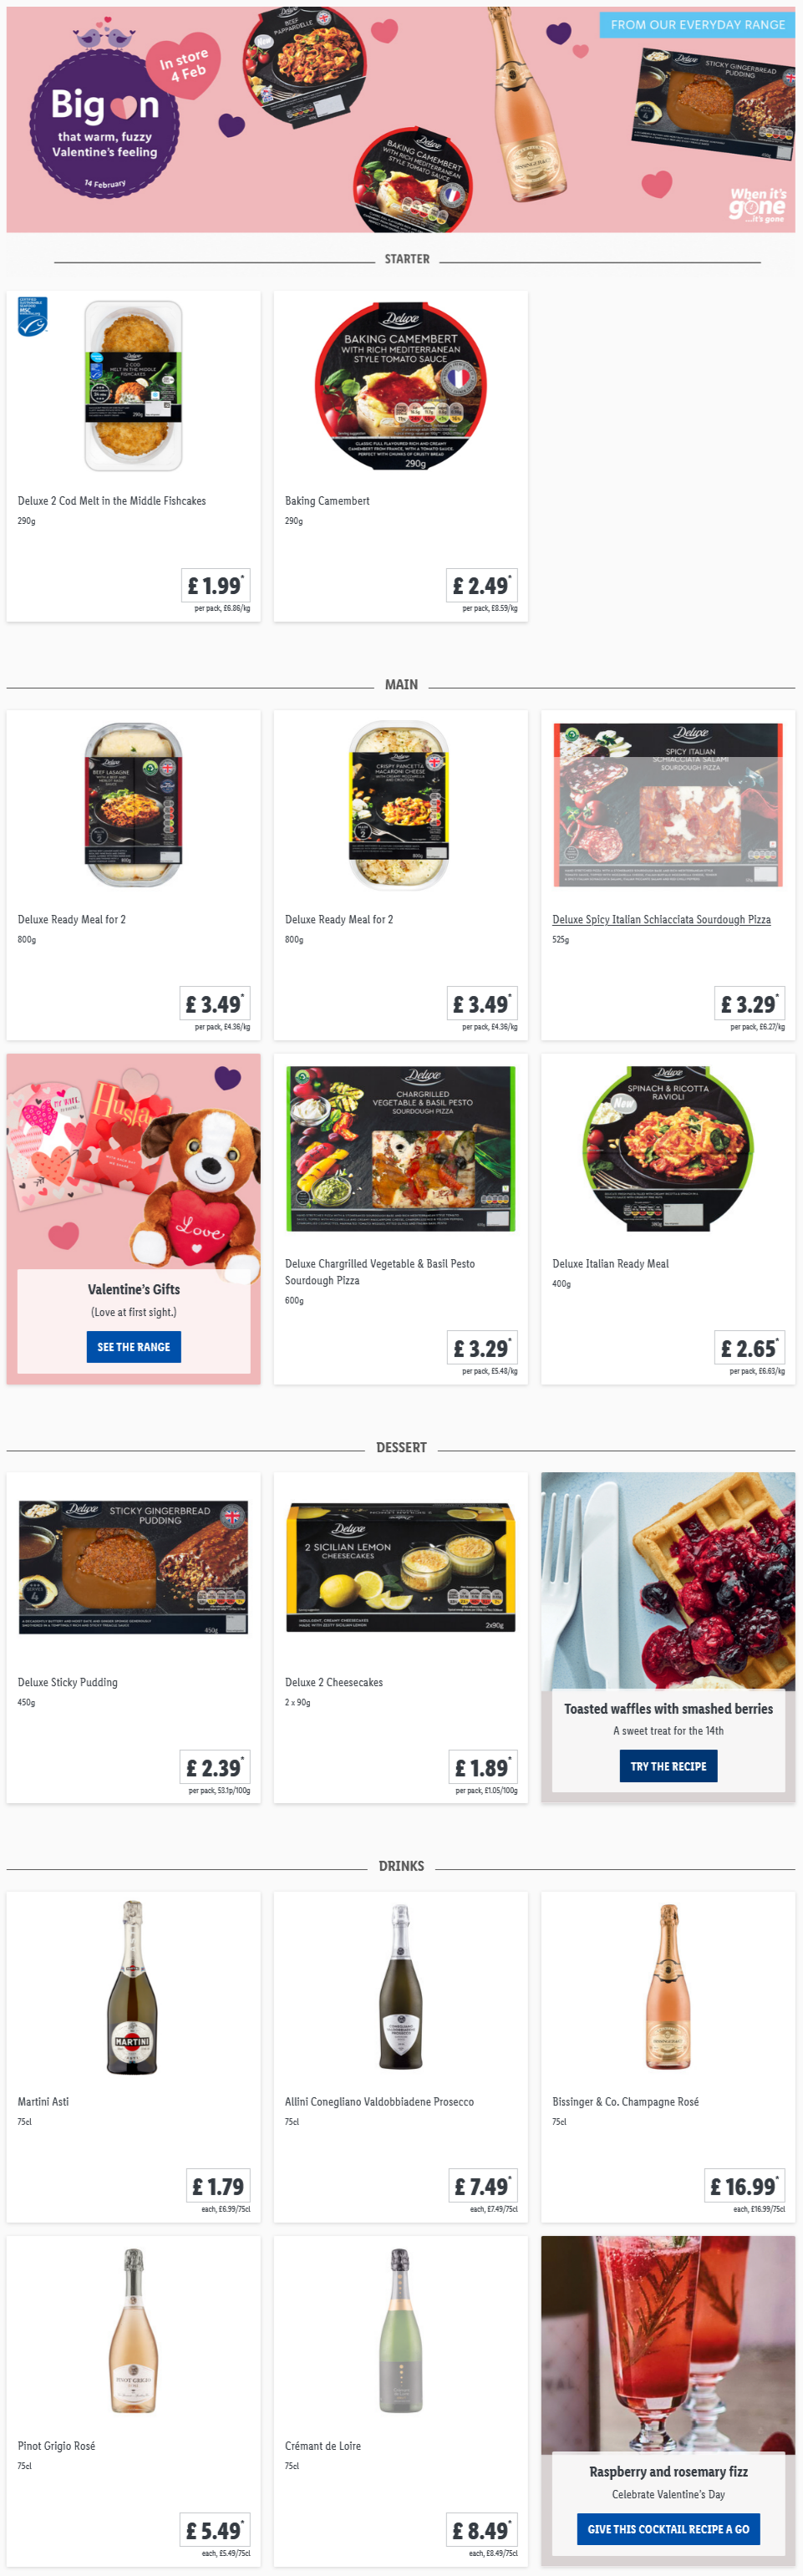 LIDL Offers this Thursday Valentine's Day Food From 4th February 2021